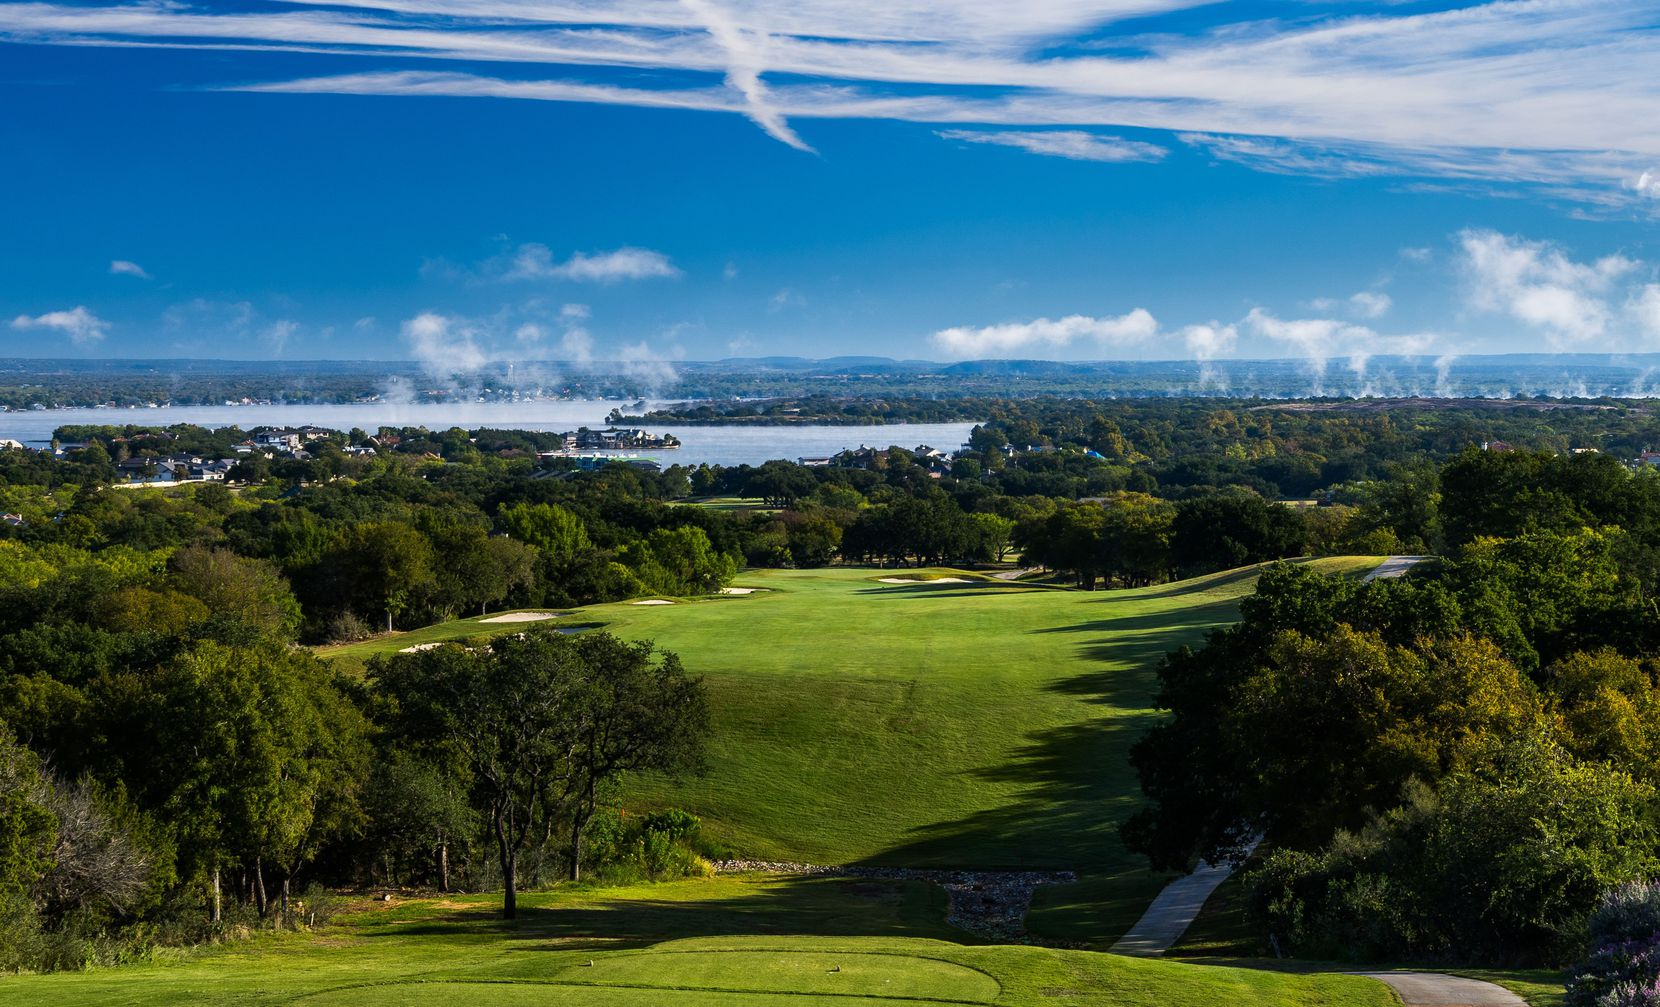 No. 10 on Horseshoe Bay's Apple Rock Course is a 567-yard downhill par-5 hole from the tips. The course was renovated as part of a $100 million project that included the resort's other two courses along with the private Summit Rock.